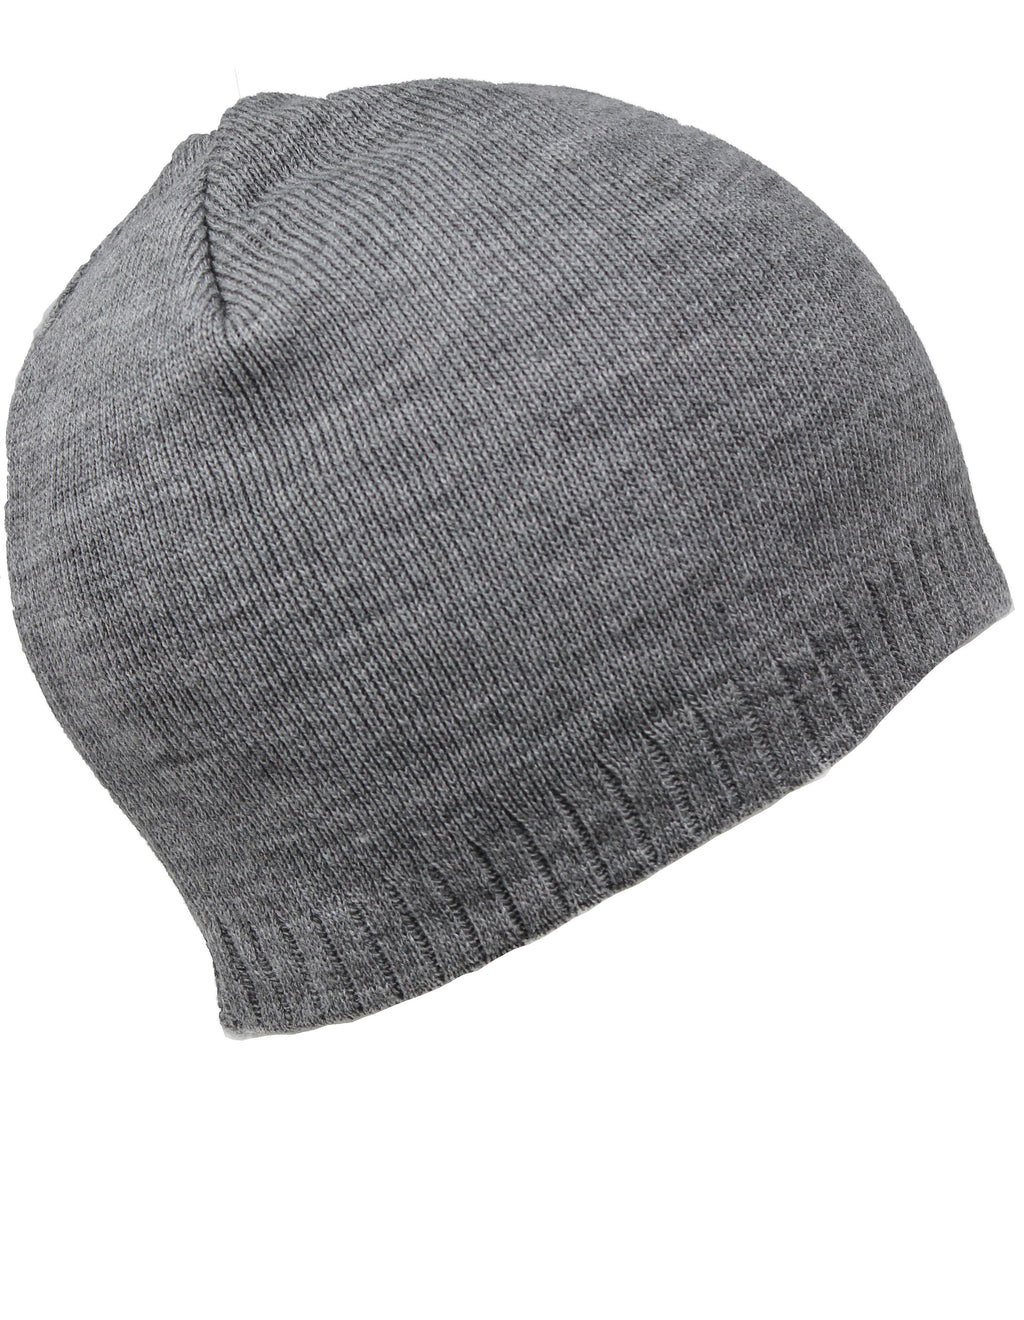 Men Knit Hat - Grey Two-Layered Chunky Hat